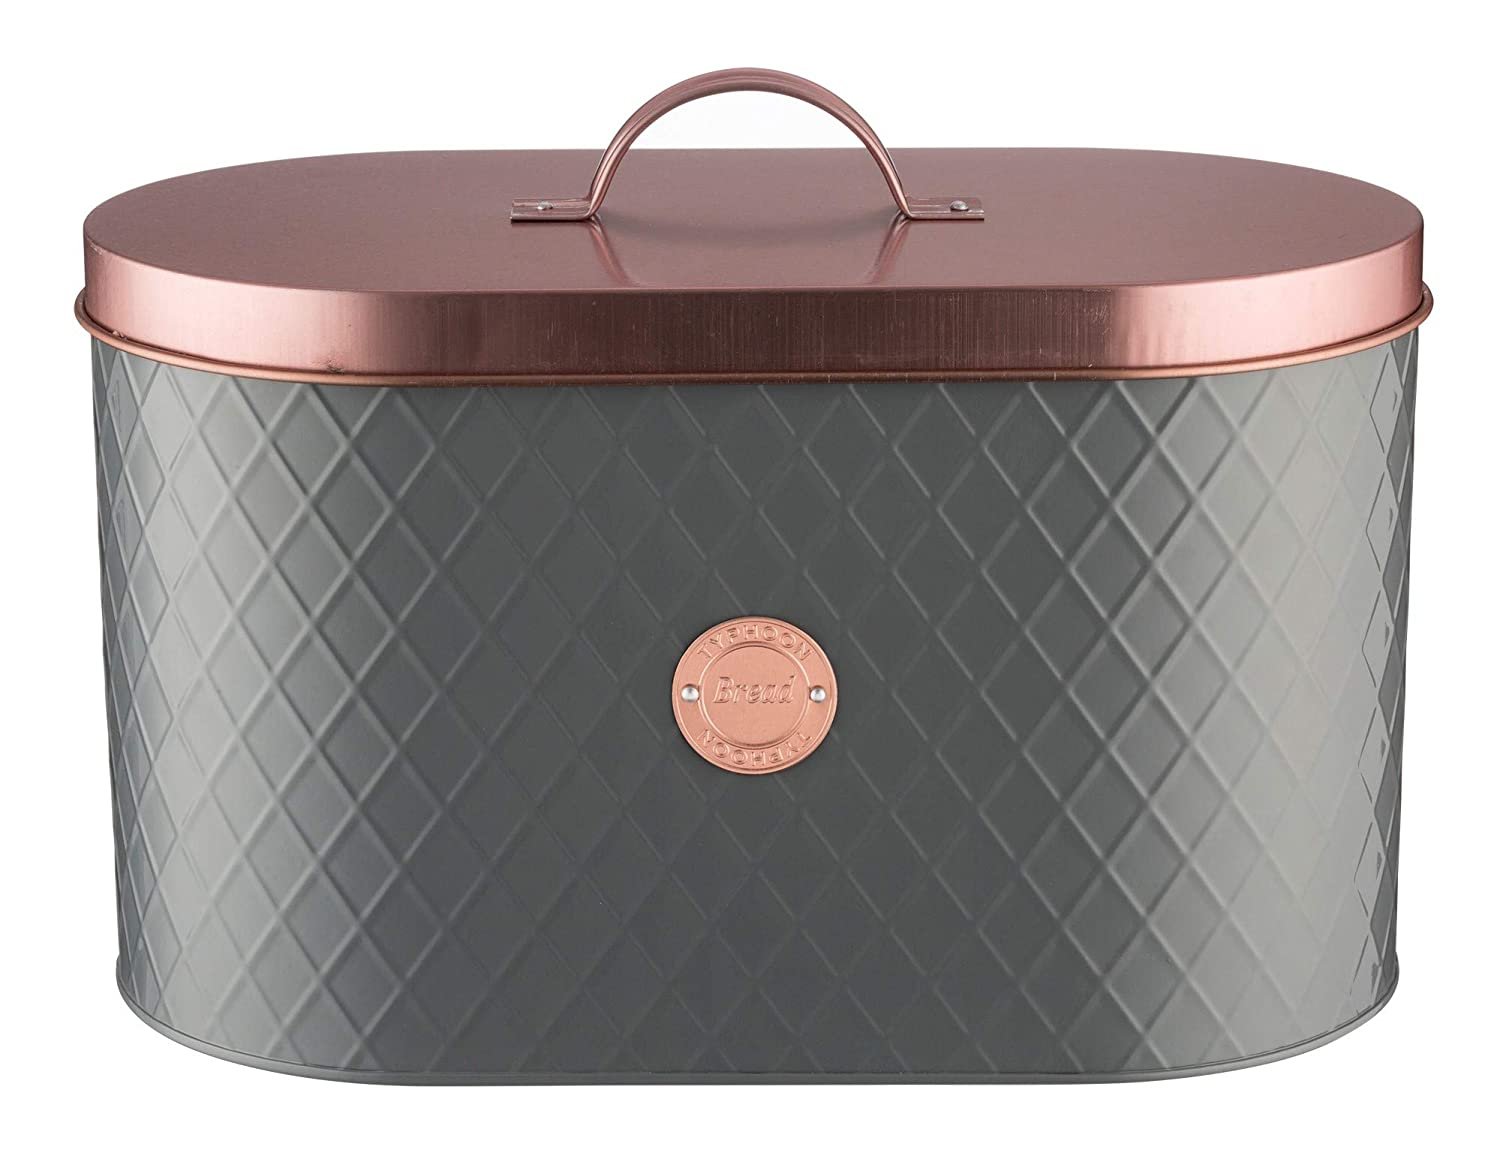 Cookware, Dining & Bar Smart Bread Bin Stainless Steel Kitchen Storage Black Rose Gold Lid Roll Top